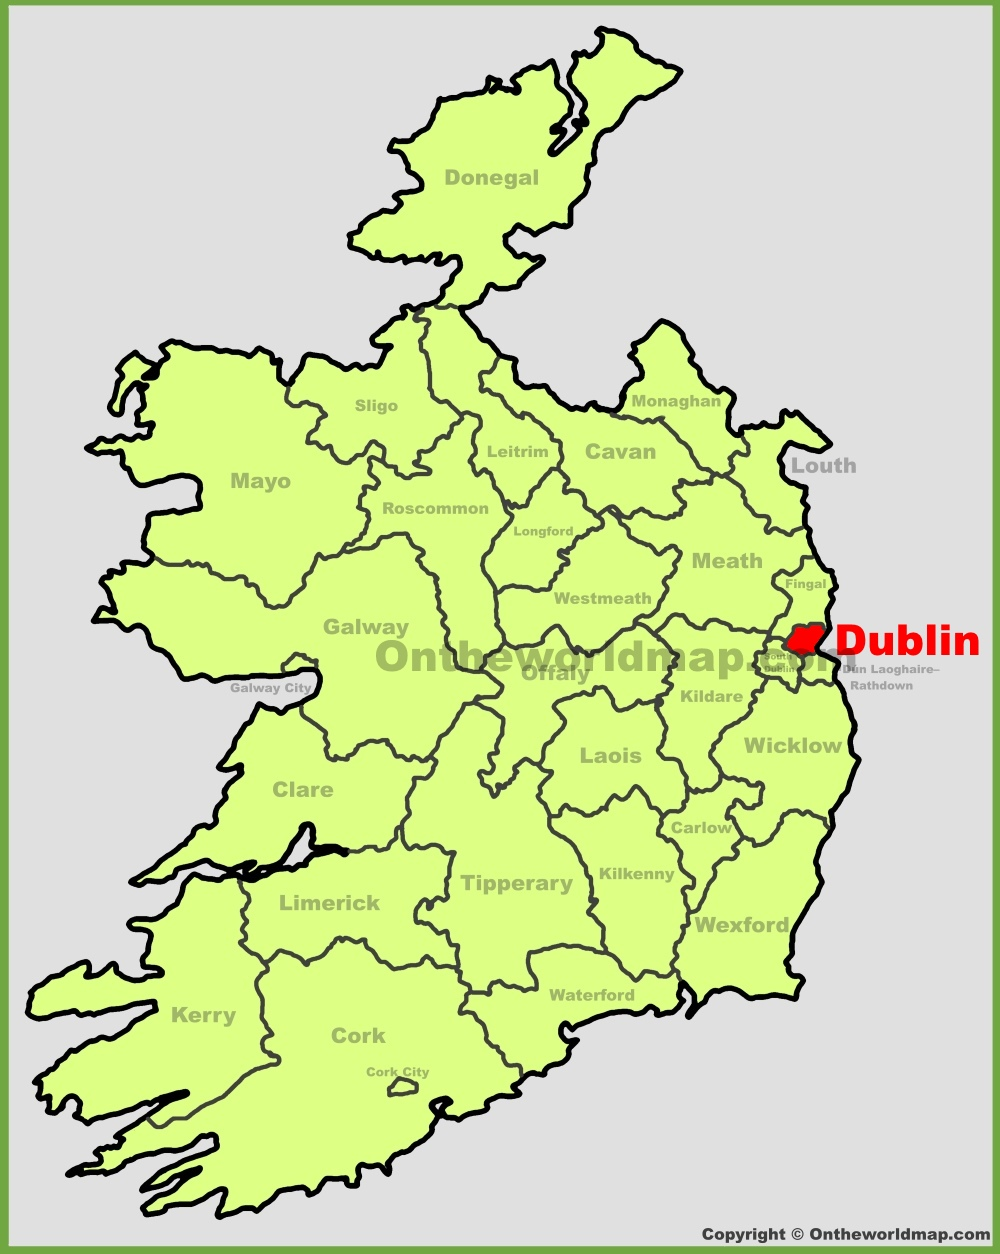 Dublin location on the Ireland map